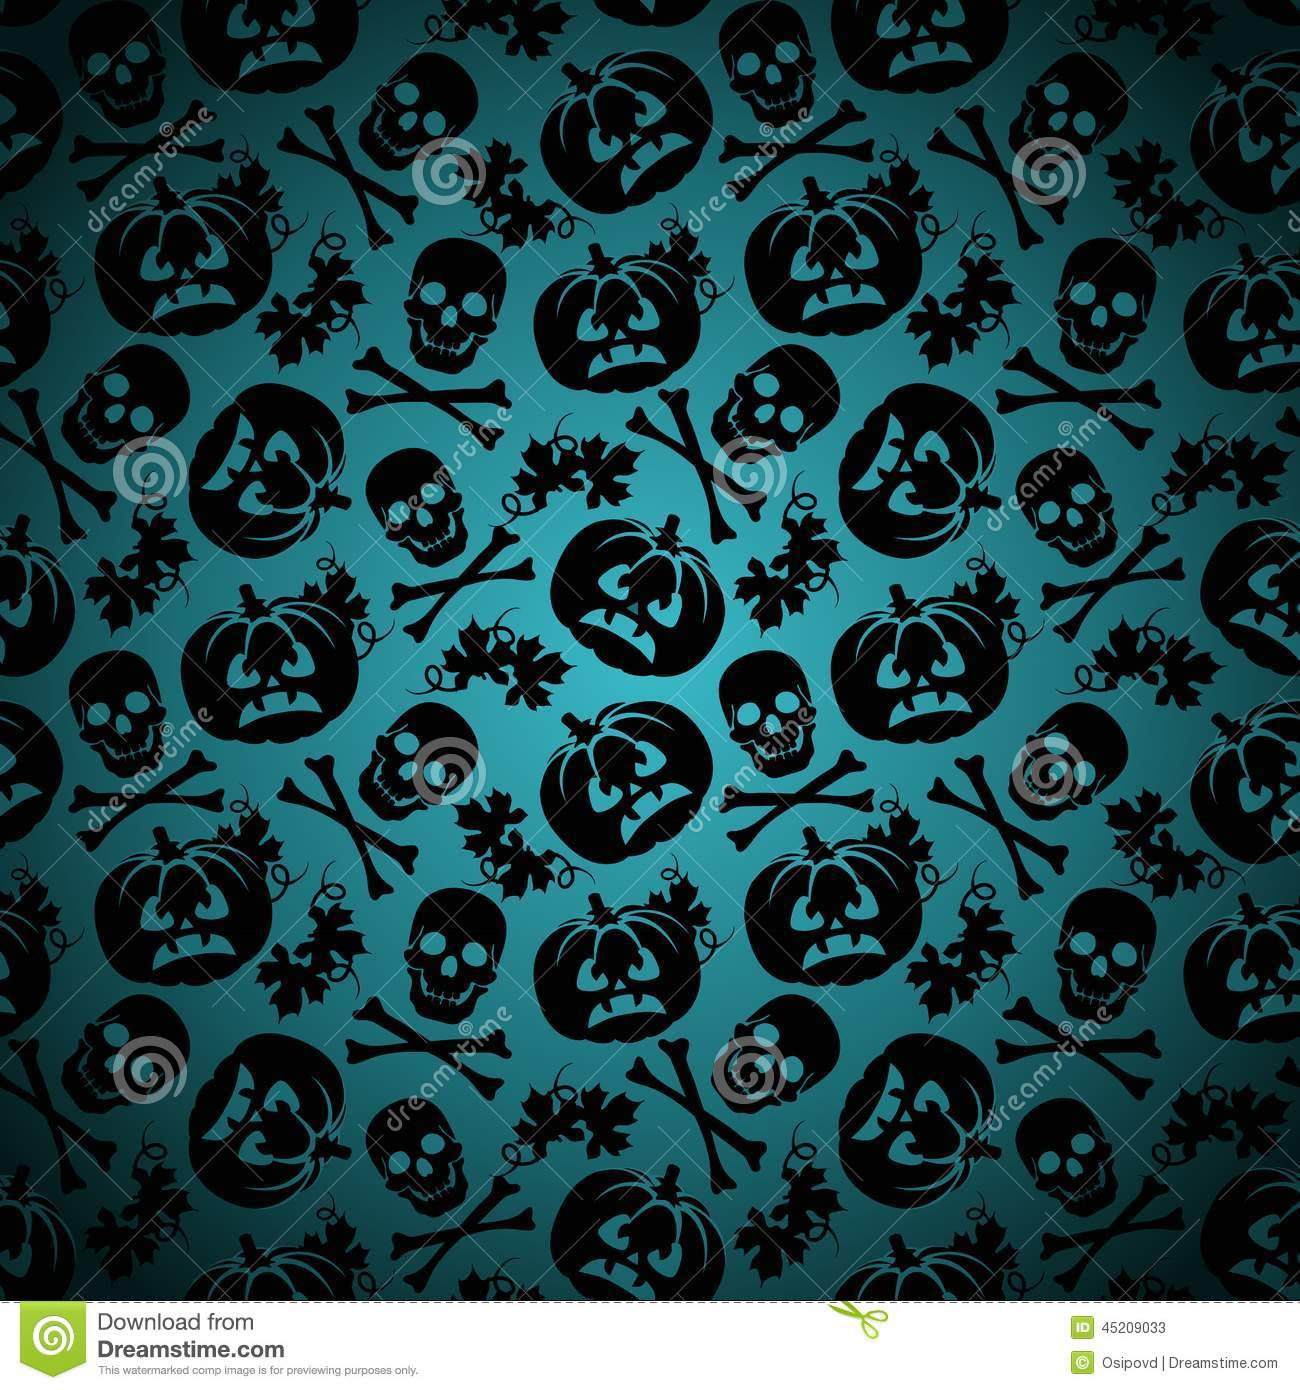 Fantastic Wallpaper Halloween Grunge - halloween-background-pumpkin-skeleton-seamless-pattern-45209033  You Should Have_444064.jpg